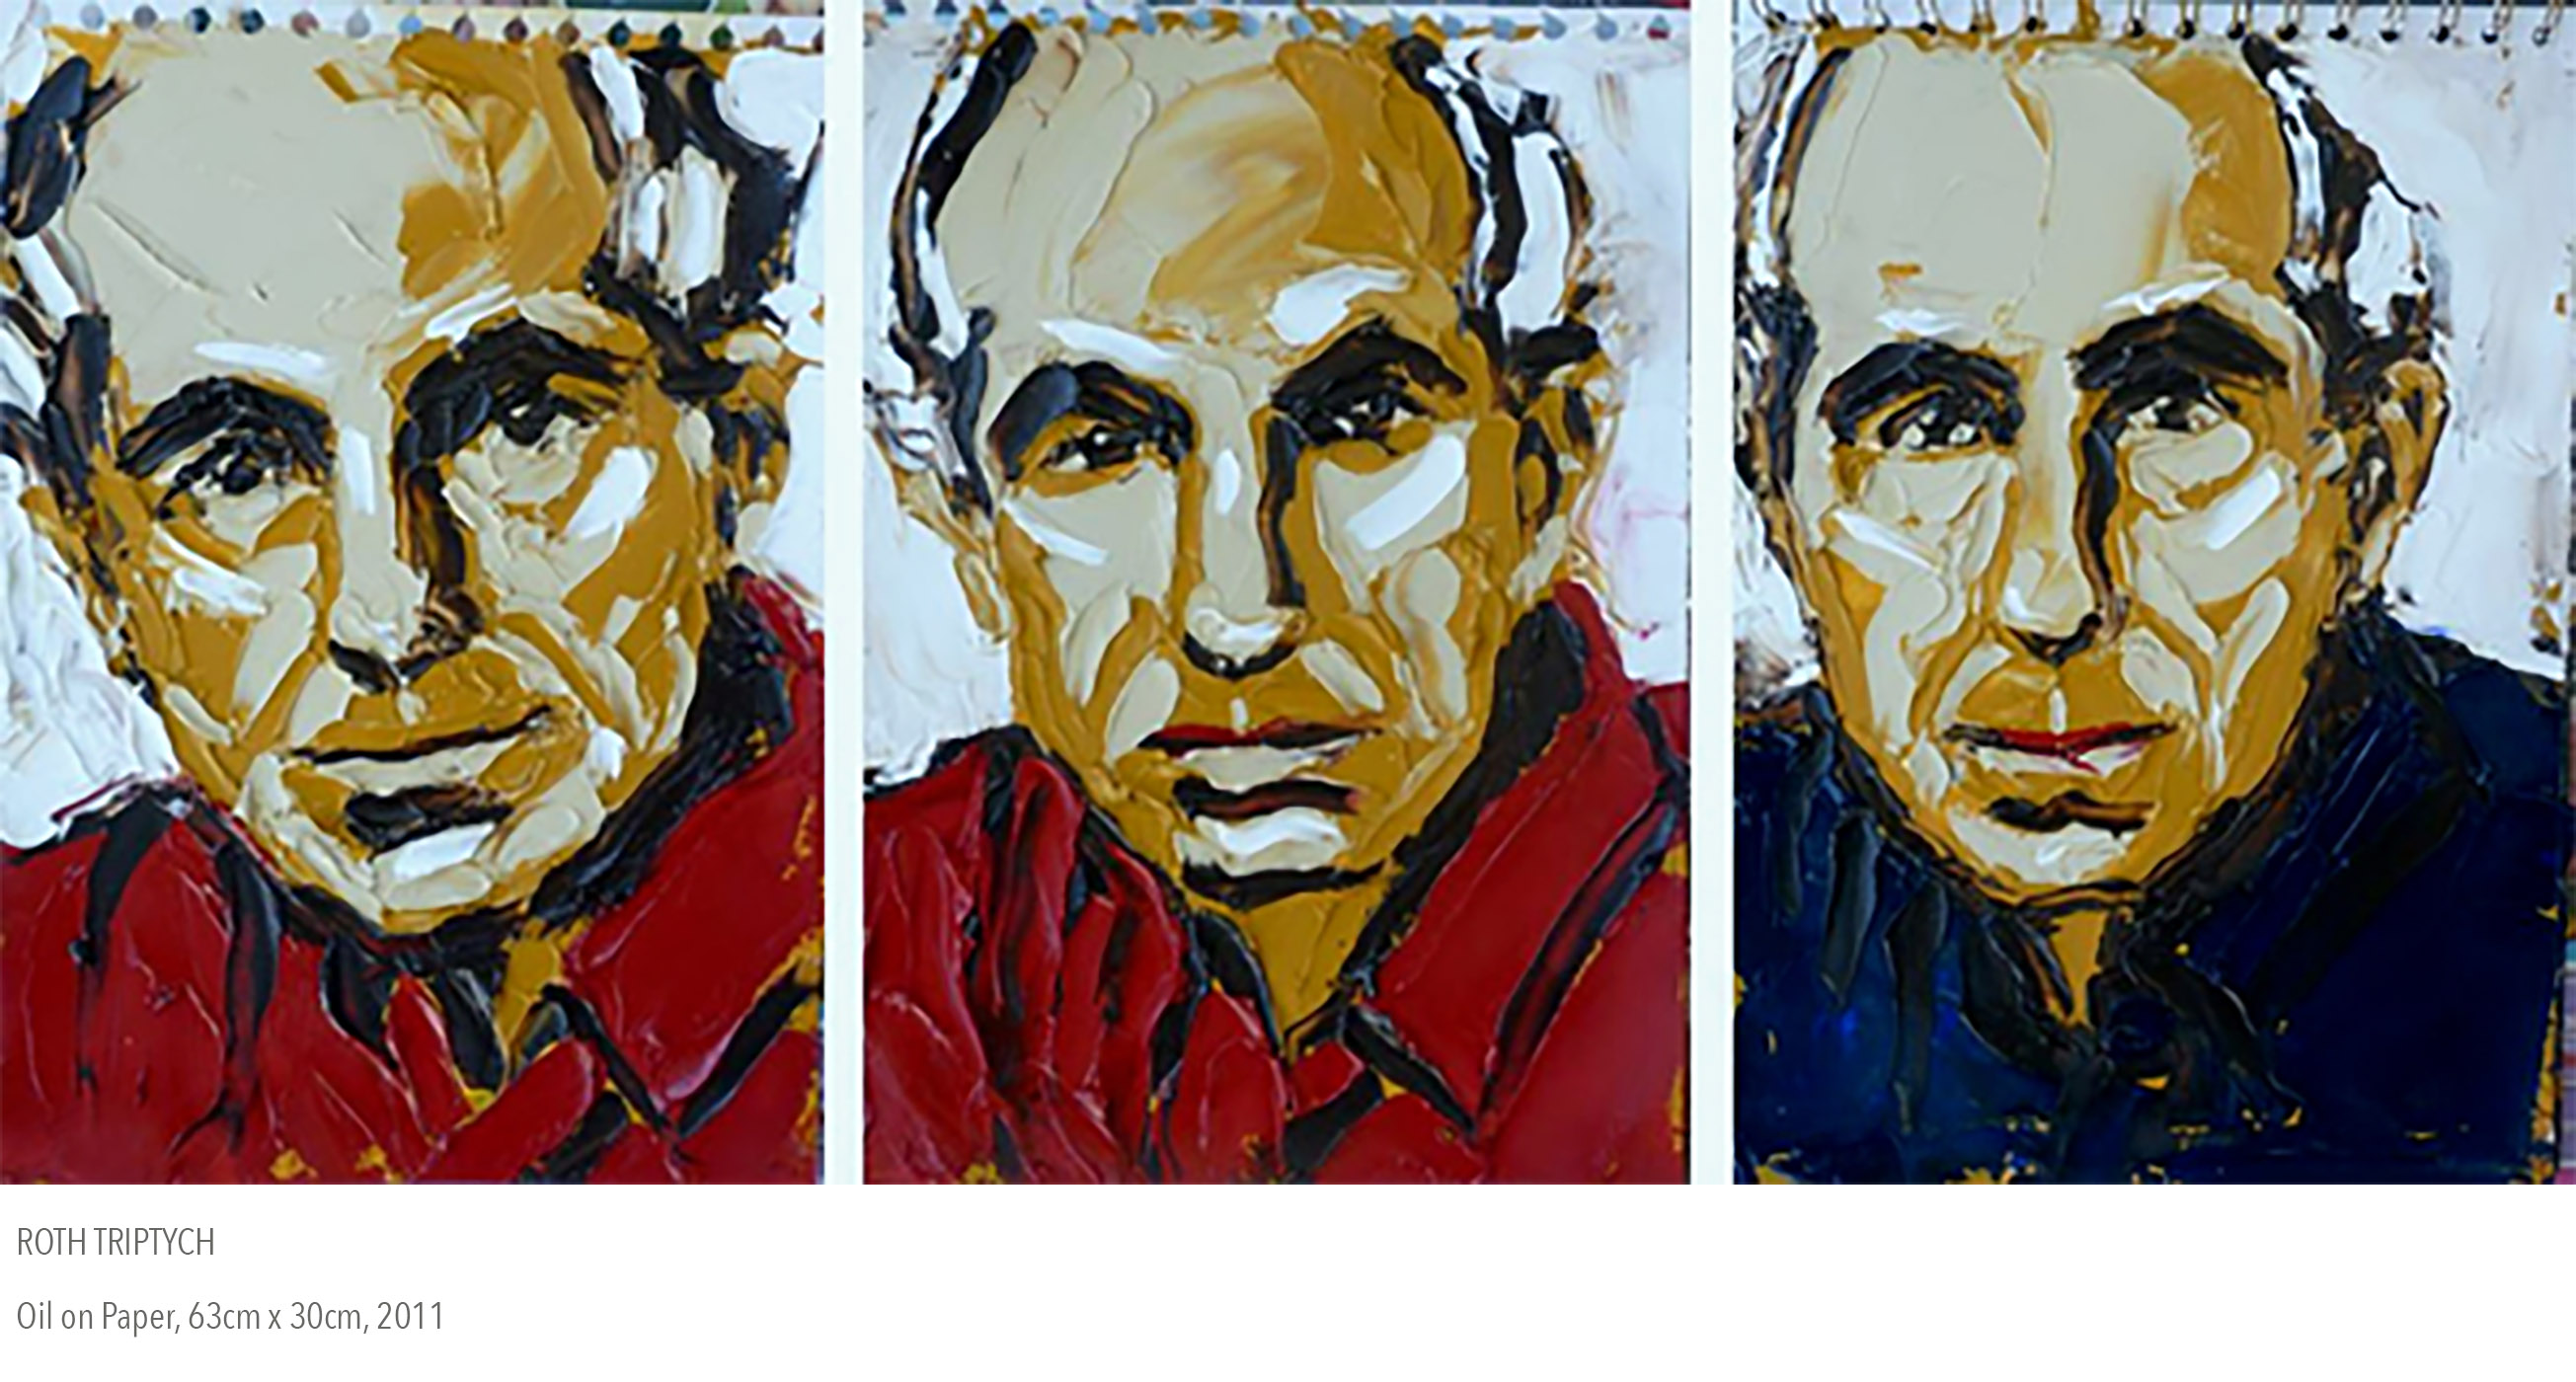 2011 oil painting called Roth Tryptych